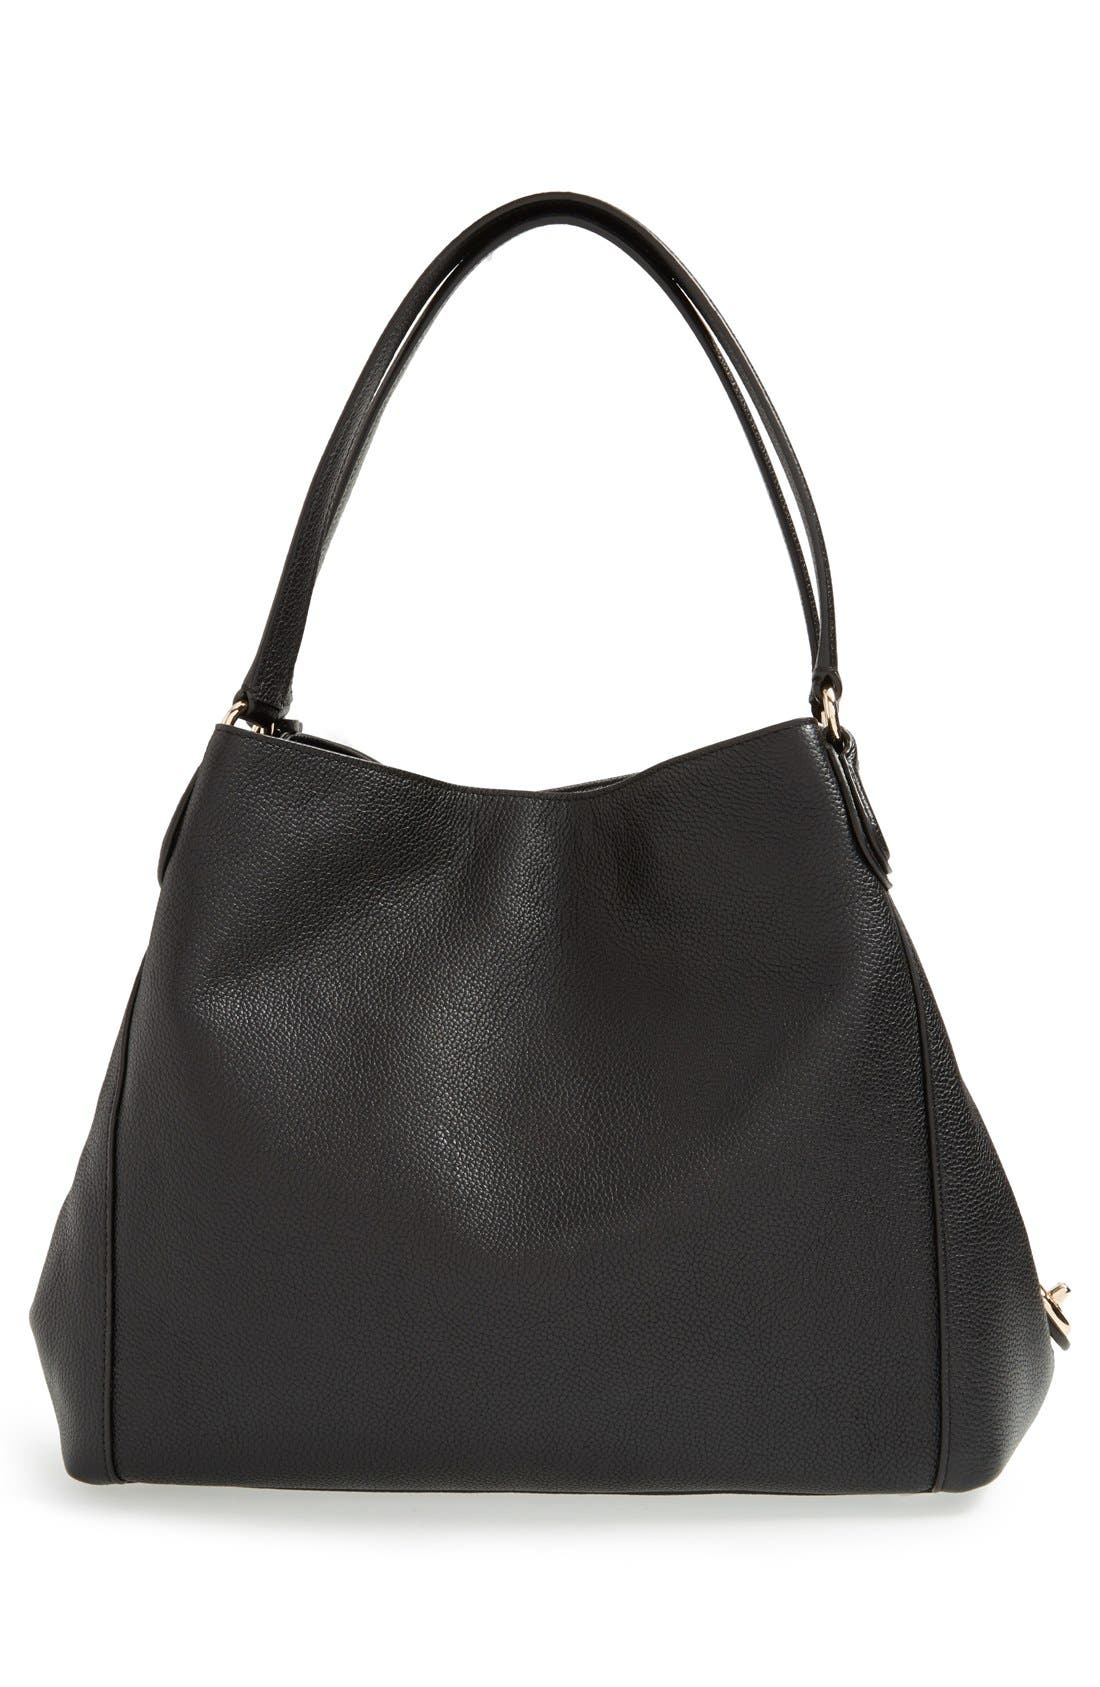 Alternate Image 3  - Coach 'Edie' Pebbled Leather Shoulder Bag